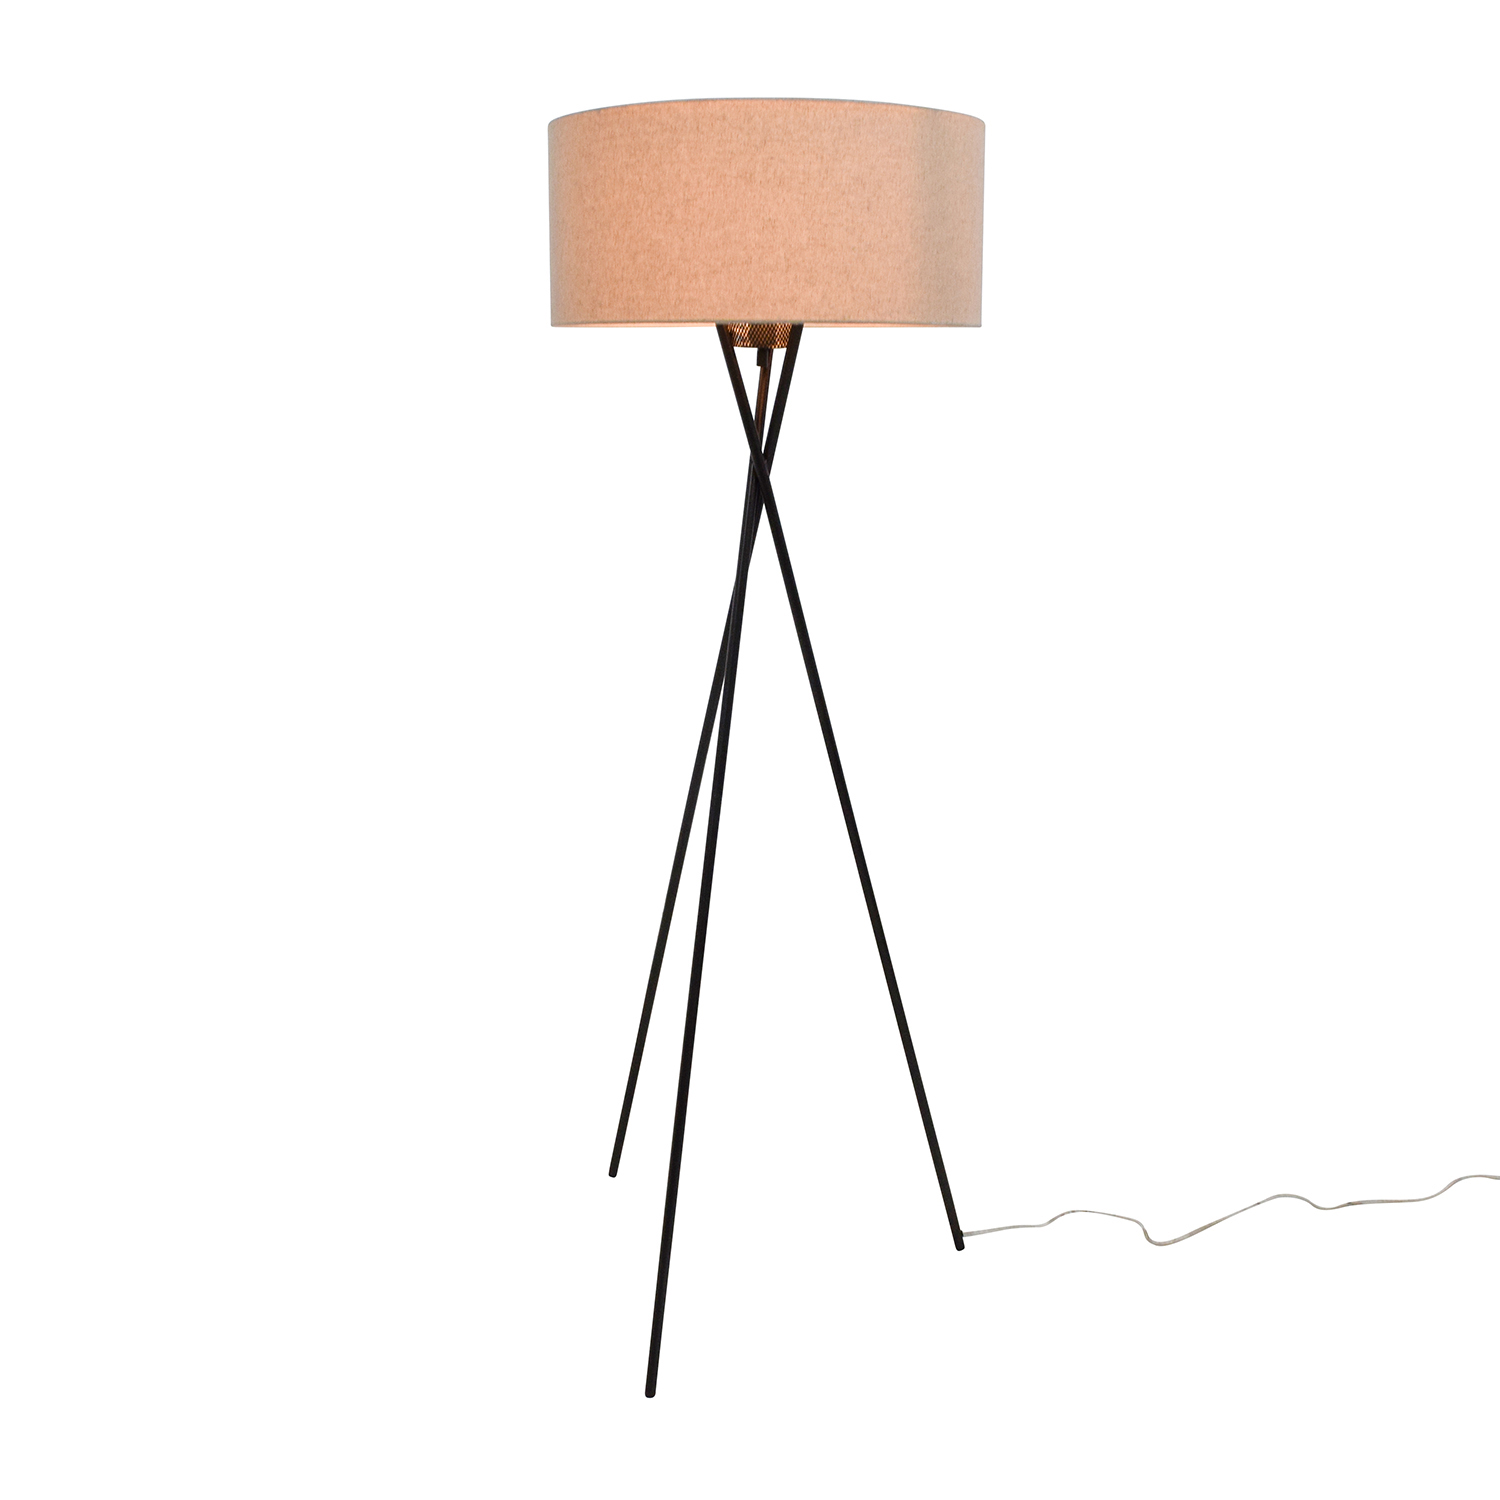 Pottery Barn Pottery Barn Tripod Standing Lamp Brown